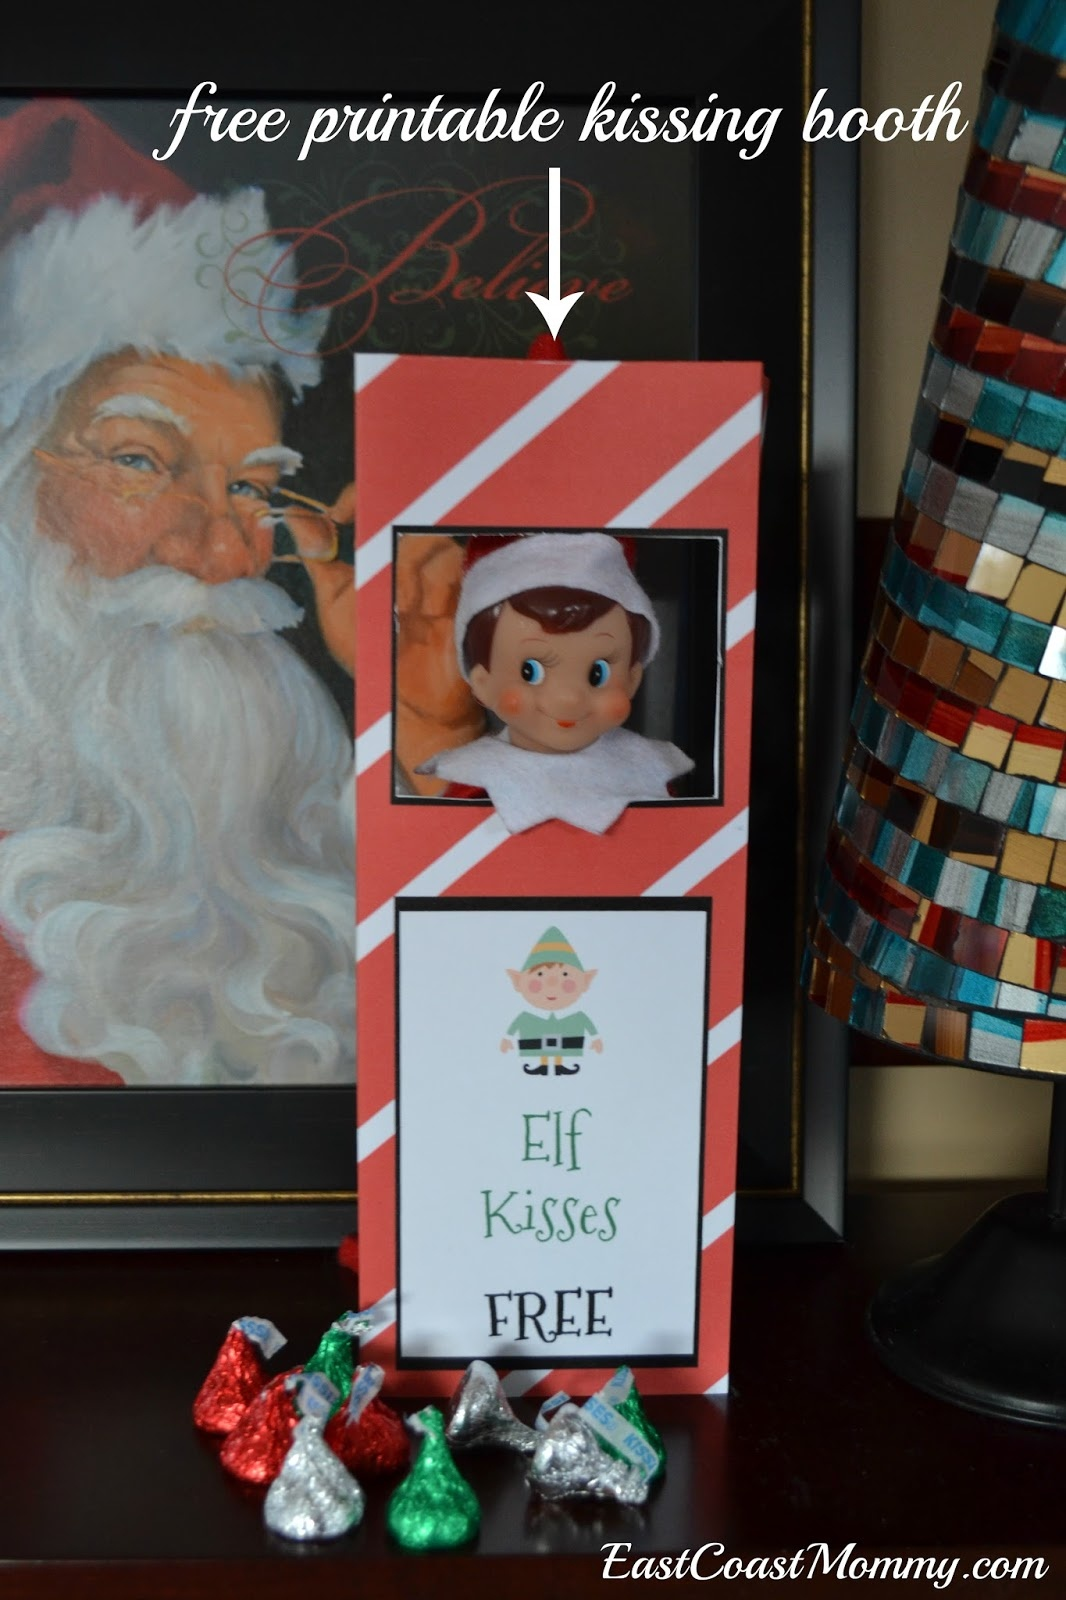 East Coast Mommy: Elf Kissing Booth (Free Printable) - Elf On The Shelf Kissing Booth Free Printable